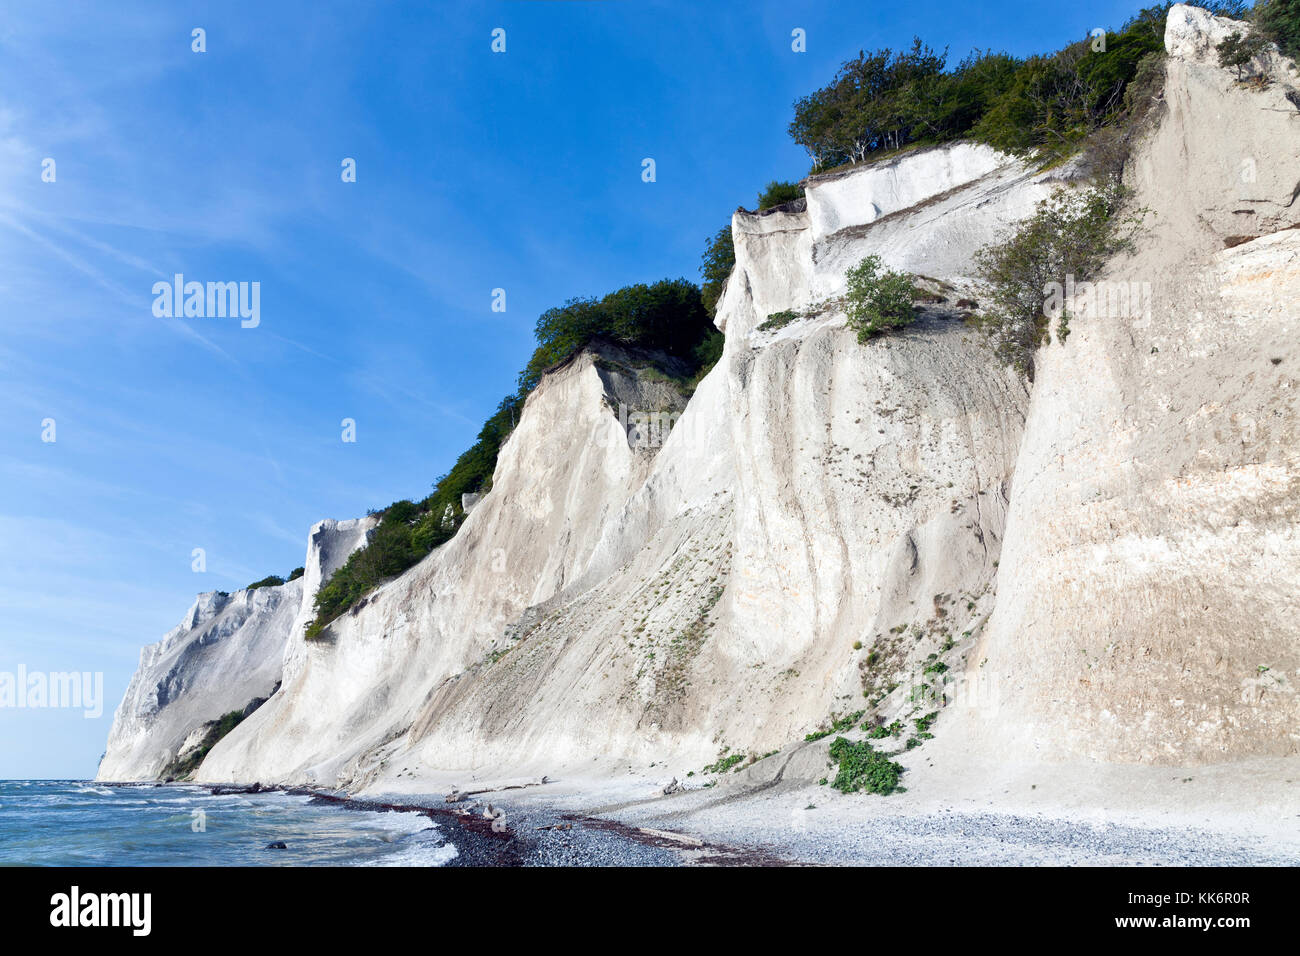 Møns Klint, the steep chalk cliffs up to 120 m above sea on the eastern Baltic Sea coast of the island Møn southeast of Sealand, Denmark, Møn or Moen. Stock Photo